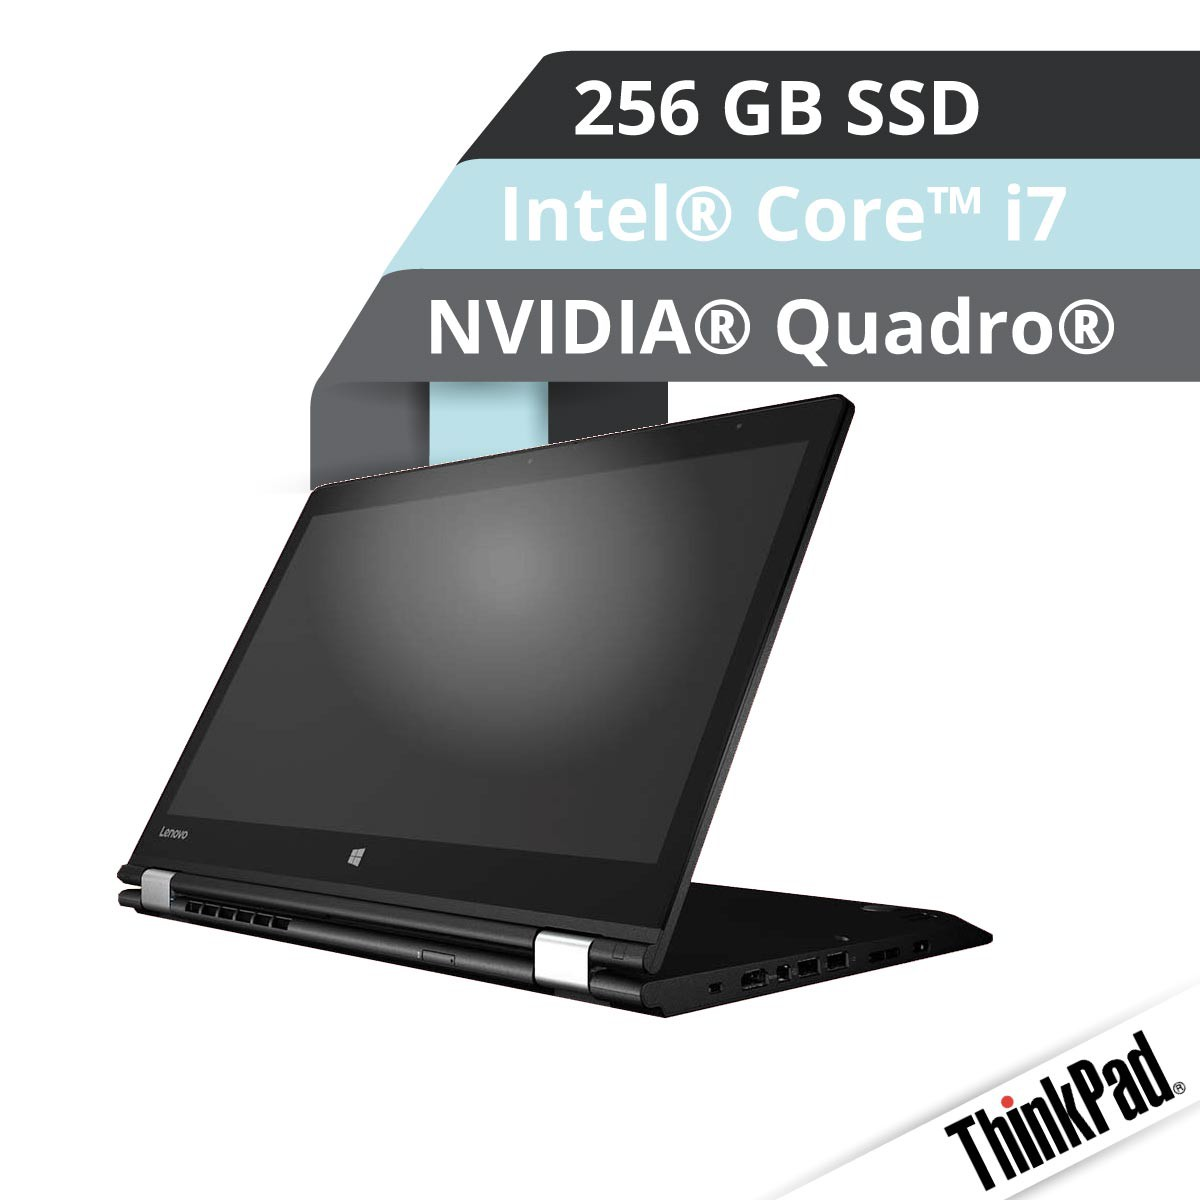 Lenovo™ ThinkPad® Yoga P40 Multimode Workstation Modell 20GQ-0004 Demoartikel